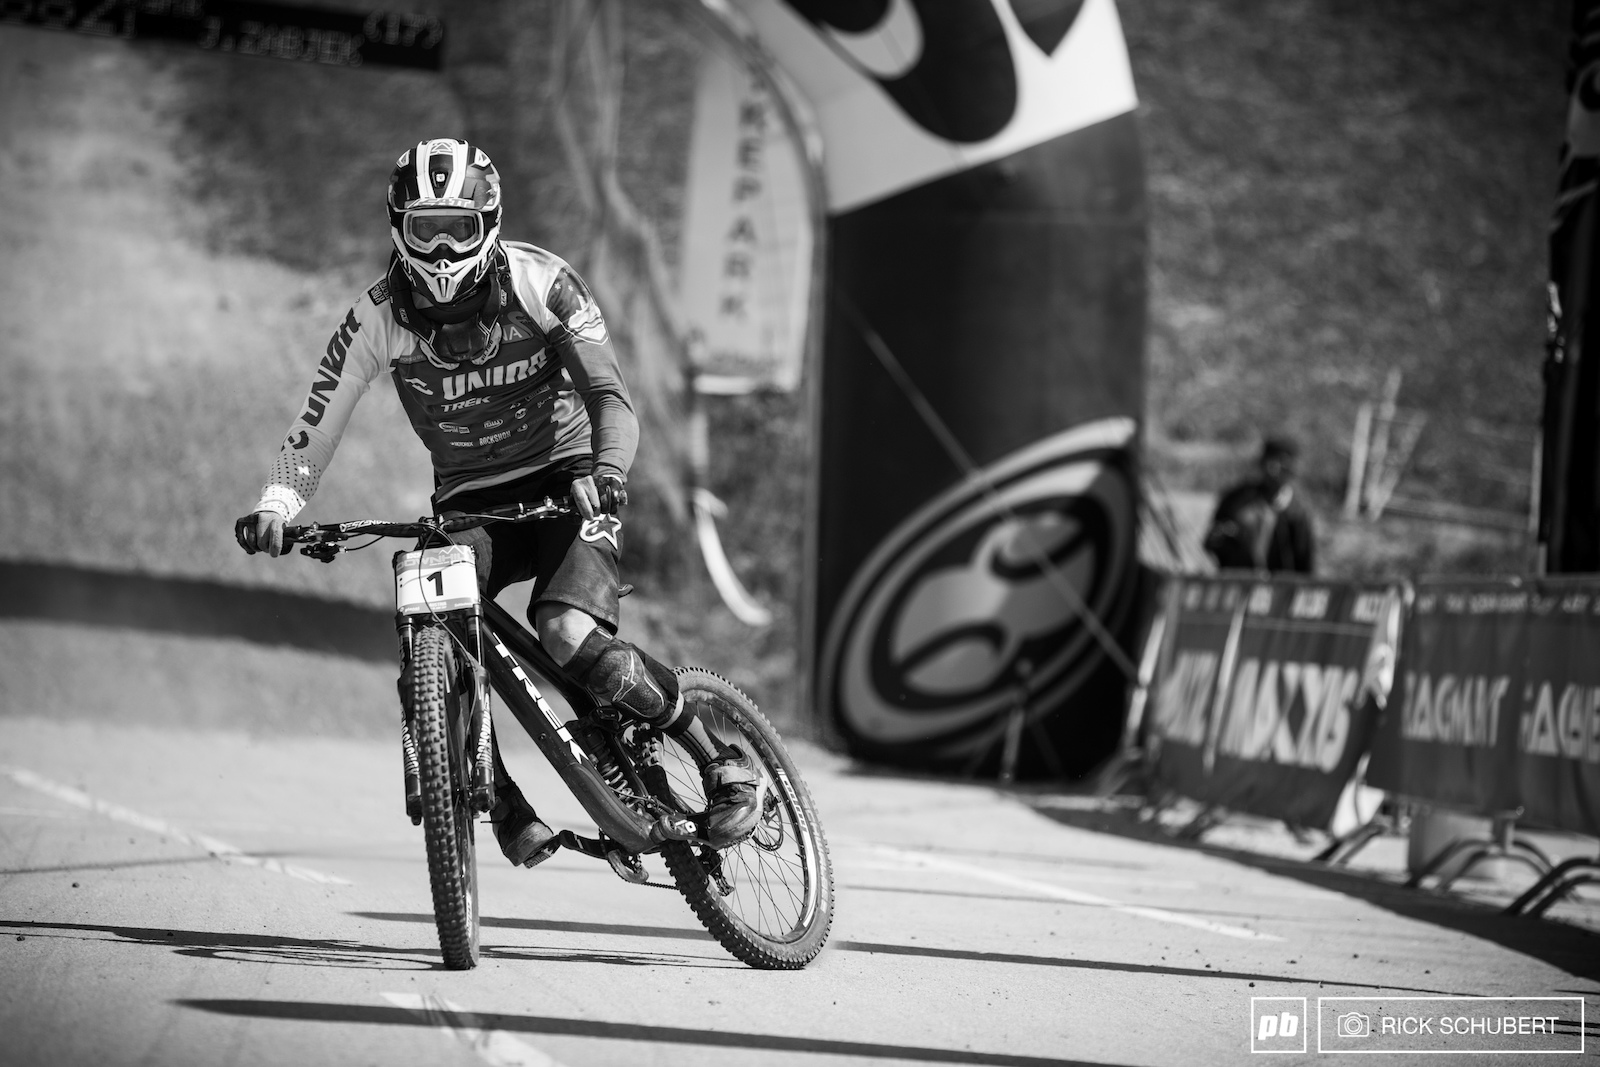 Jure Zabjek stormed into the finish area with his knee pads down and a dirty jersey